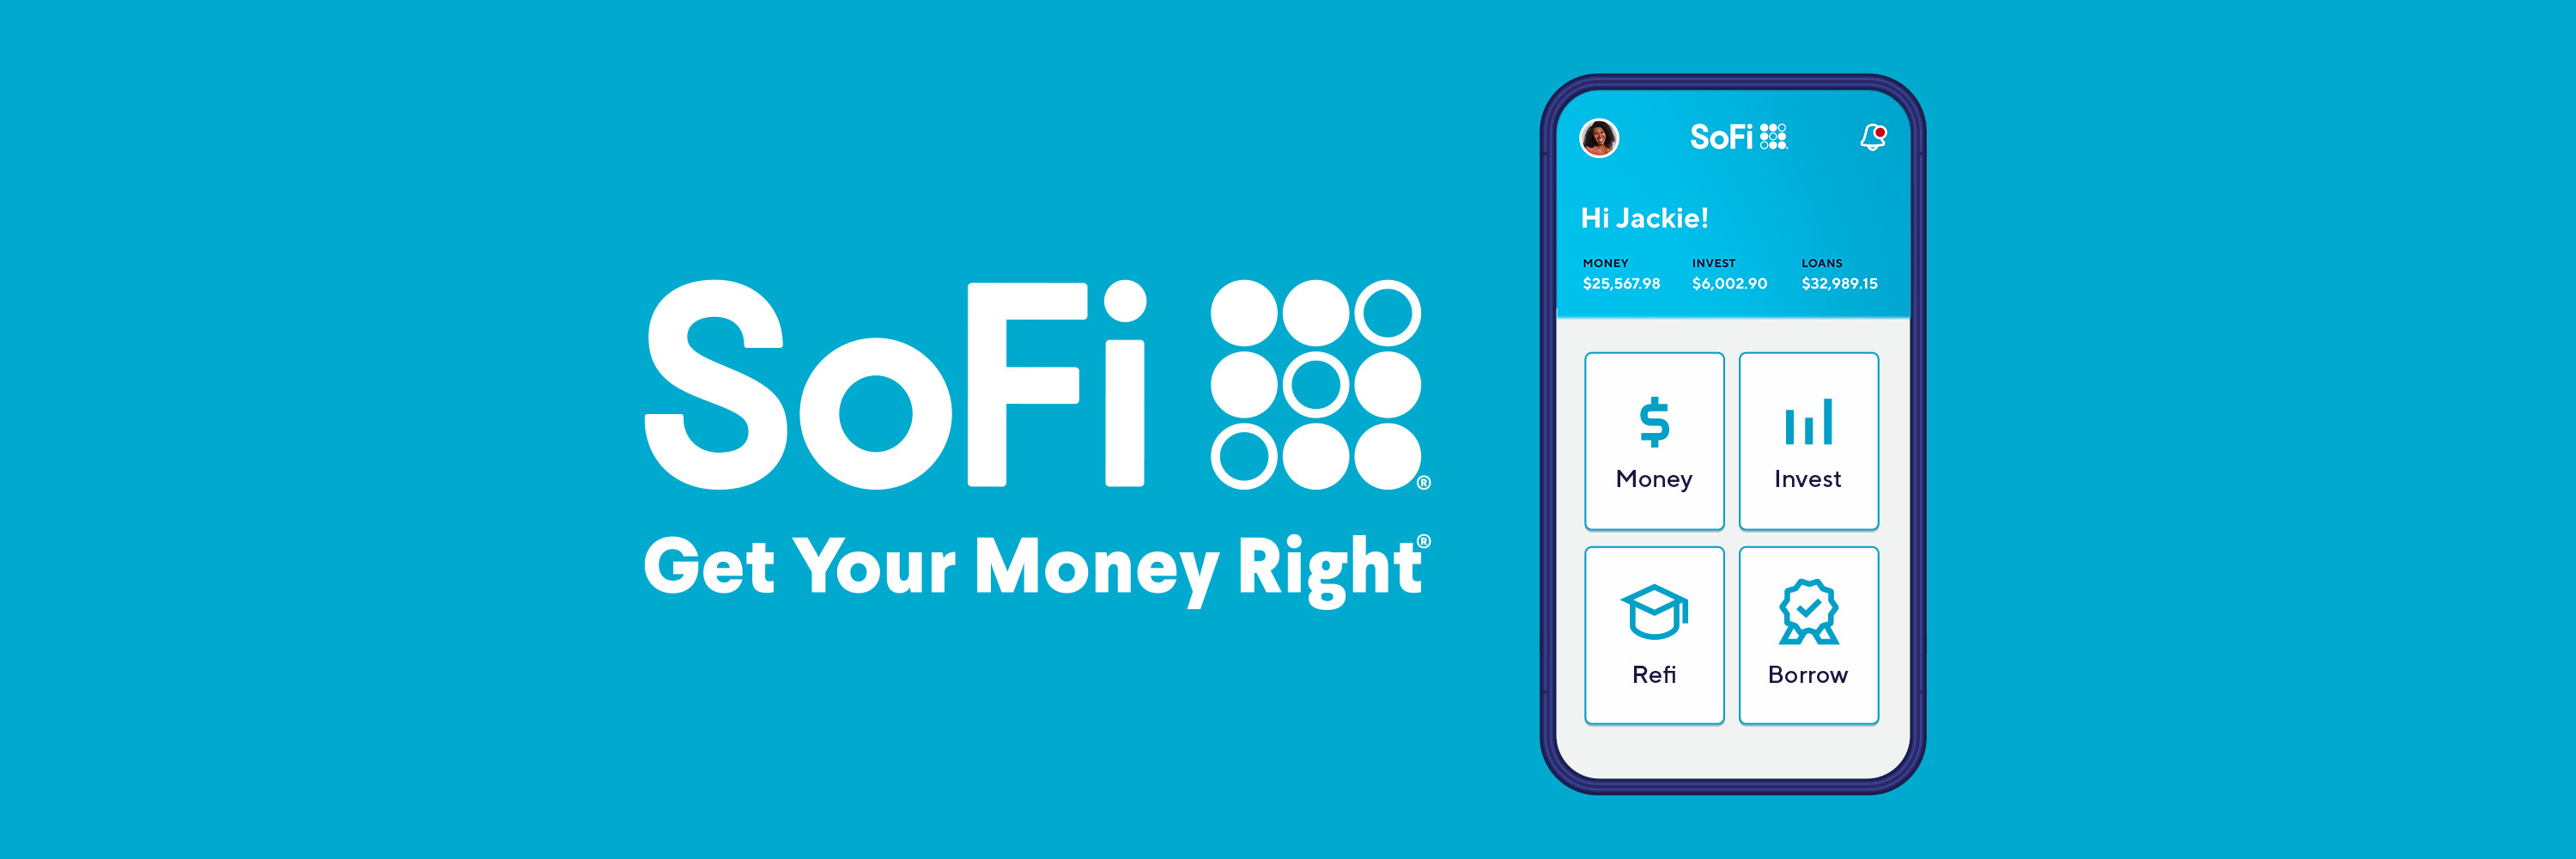 Sofi: Download the App and get $10